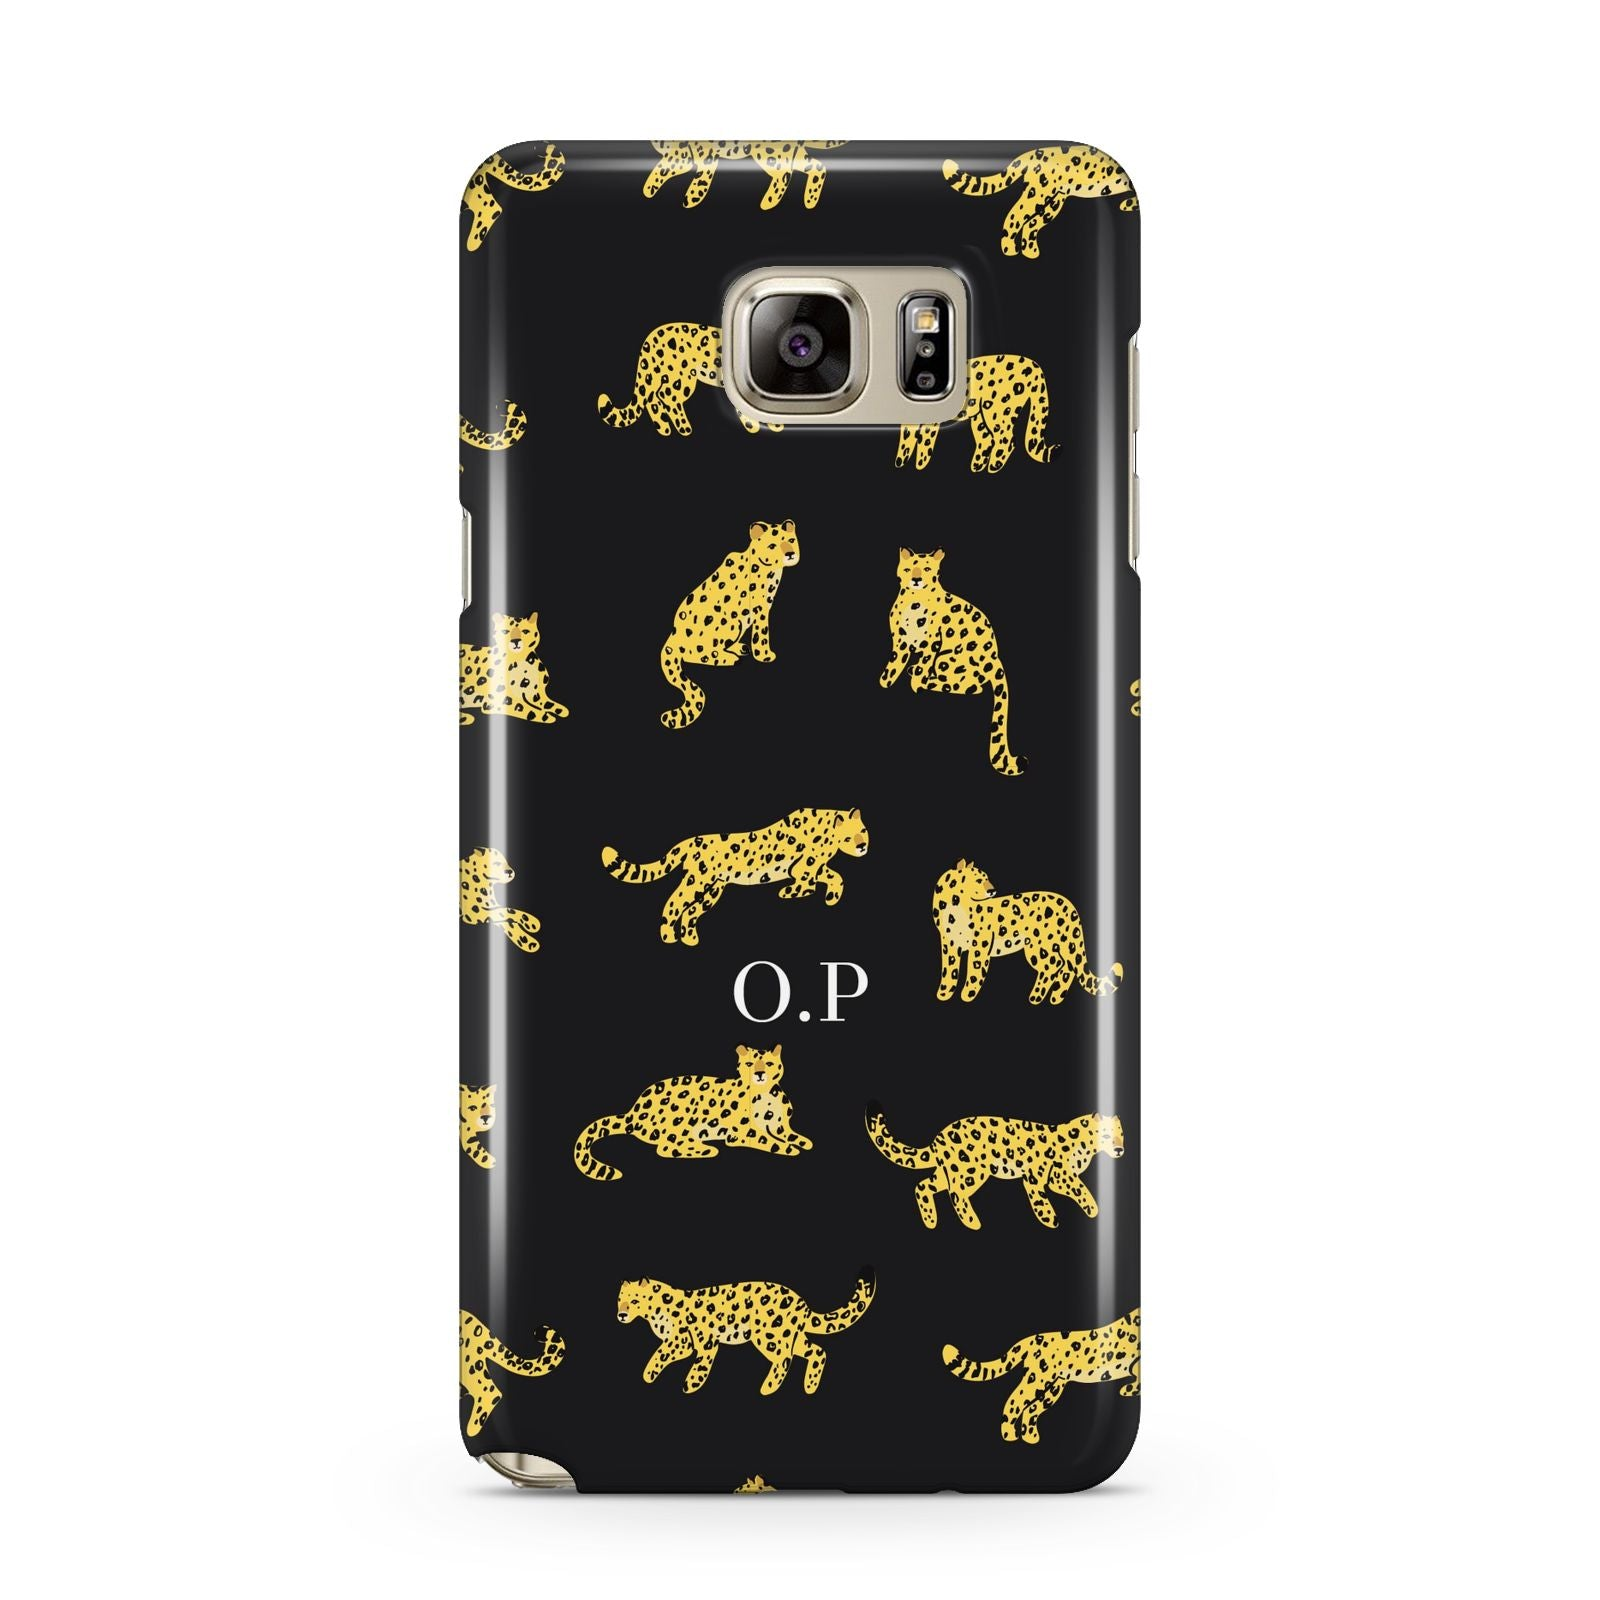 Prowling Leopard Samsung Galaxy Note 5 Case